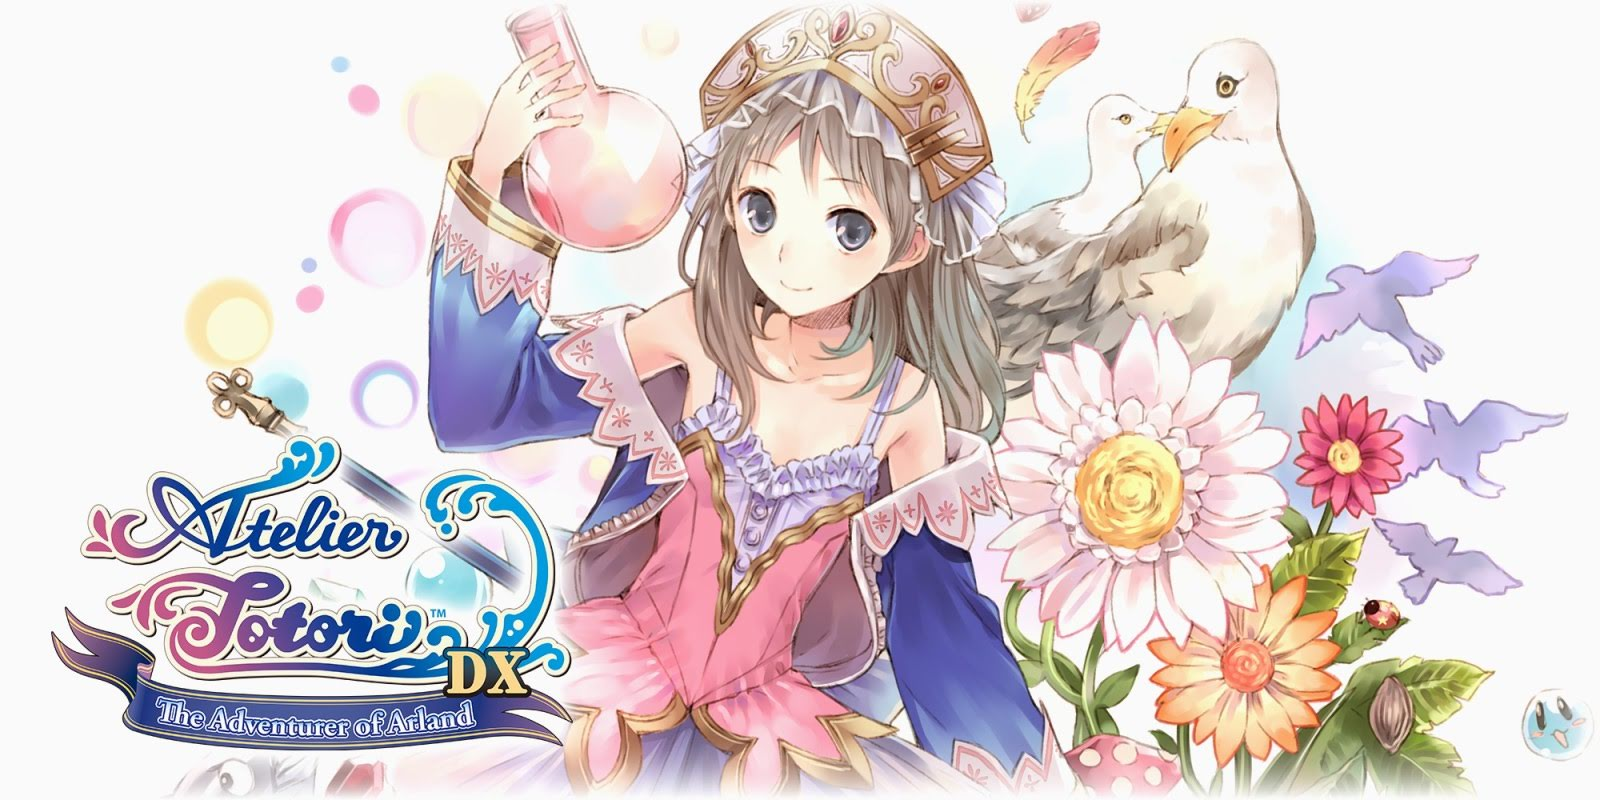 atelier-totori-the-adventurer-of-arland-dx